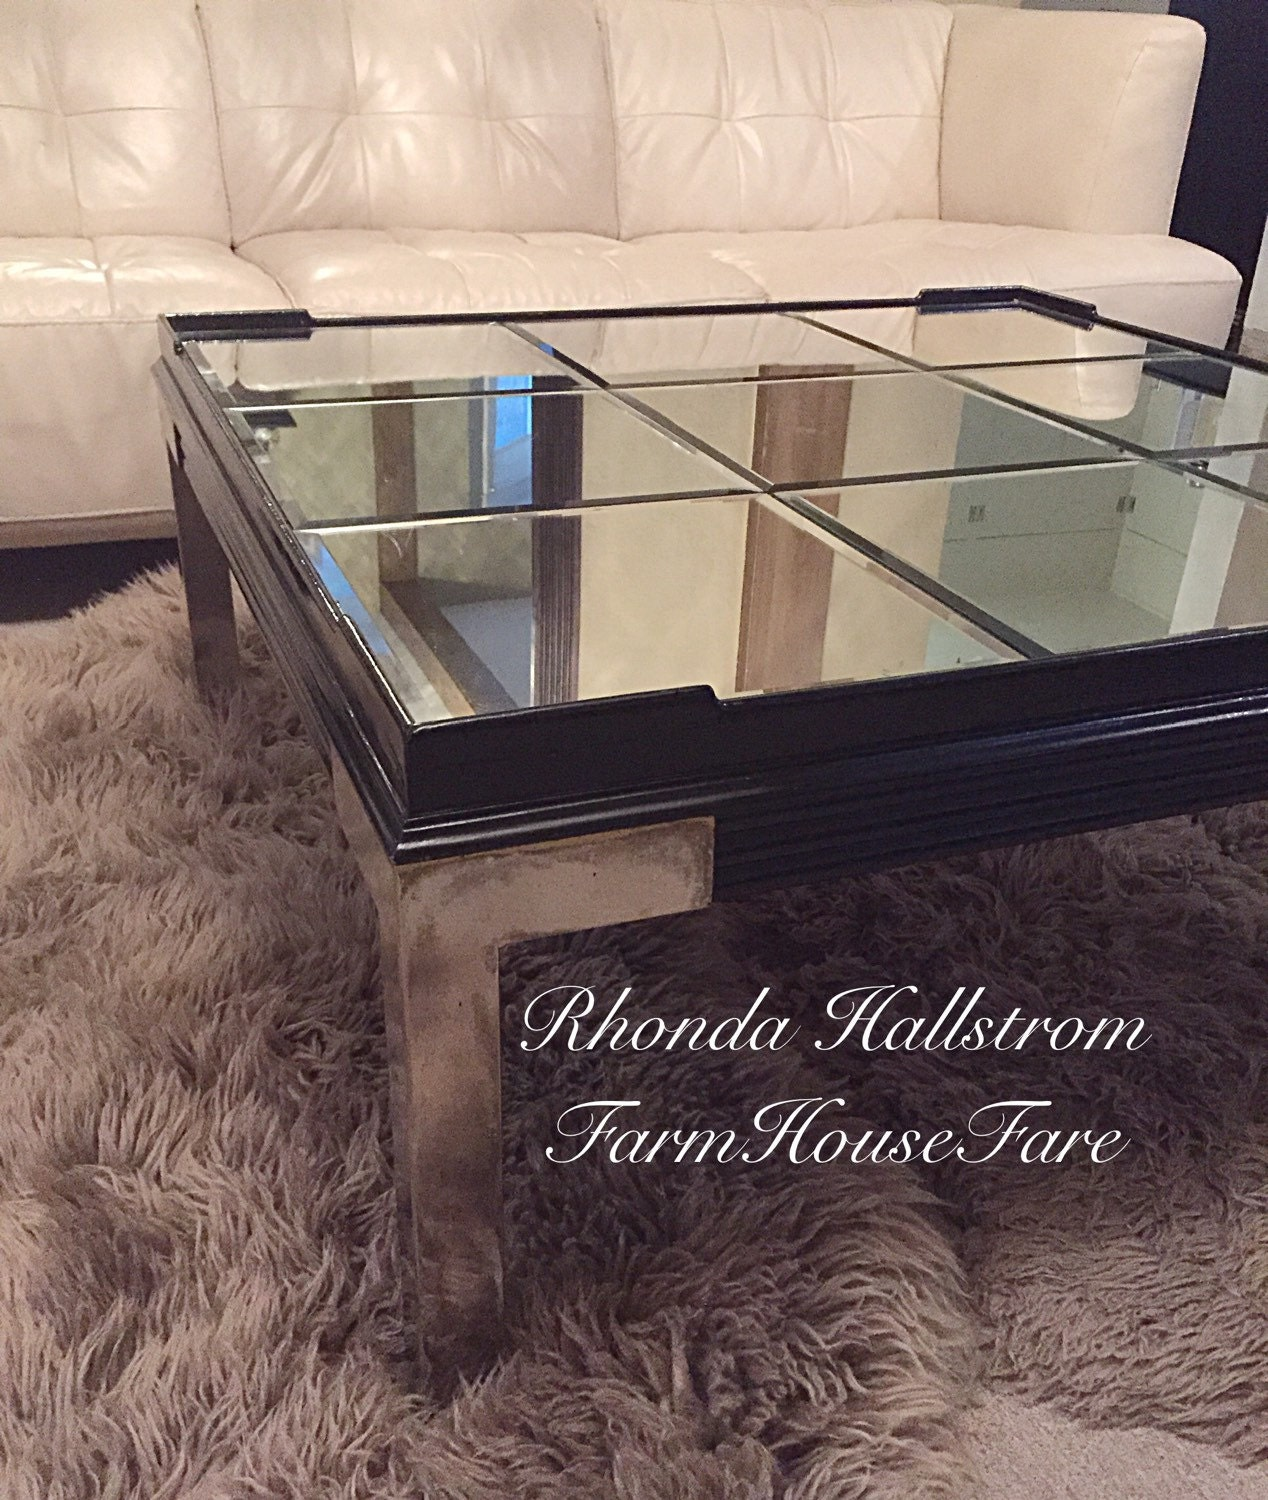 haut de gamme table basse miroir haute brillance par farmhousefare. Black Bedroom Furniture Sets. Home Design Ideas